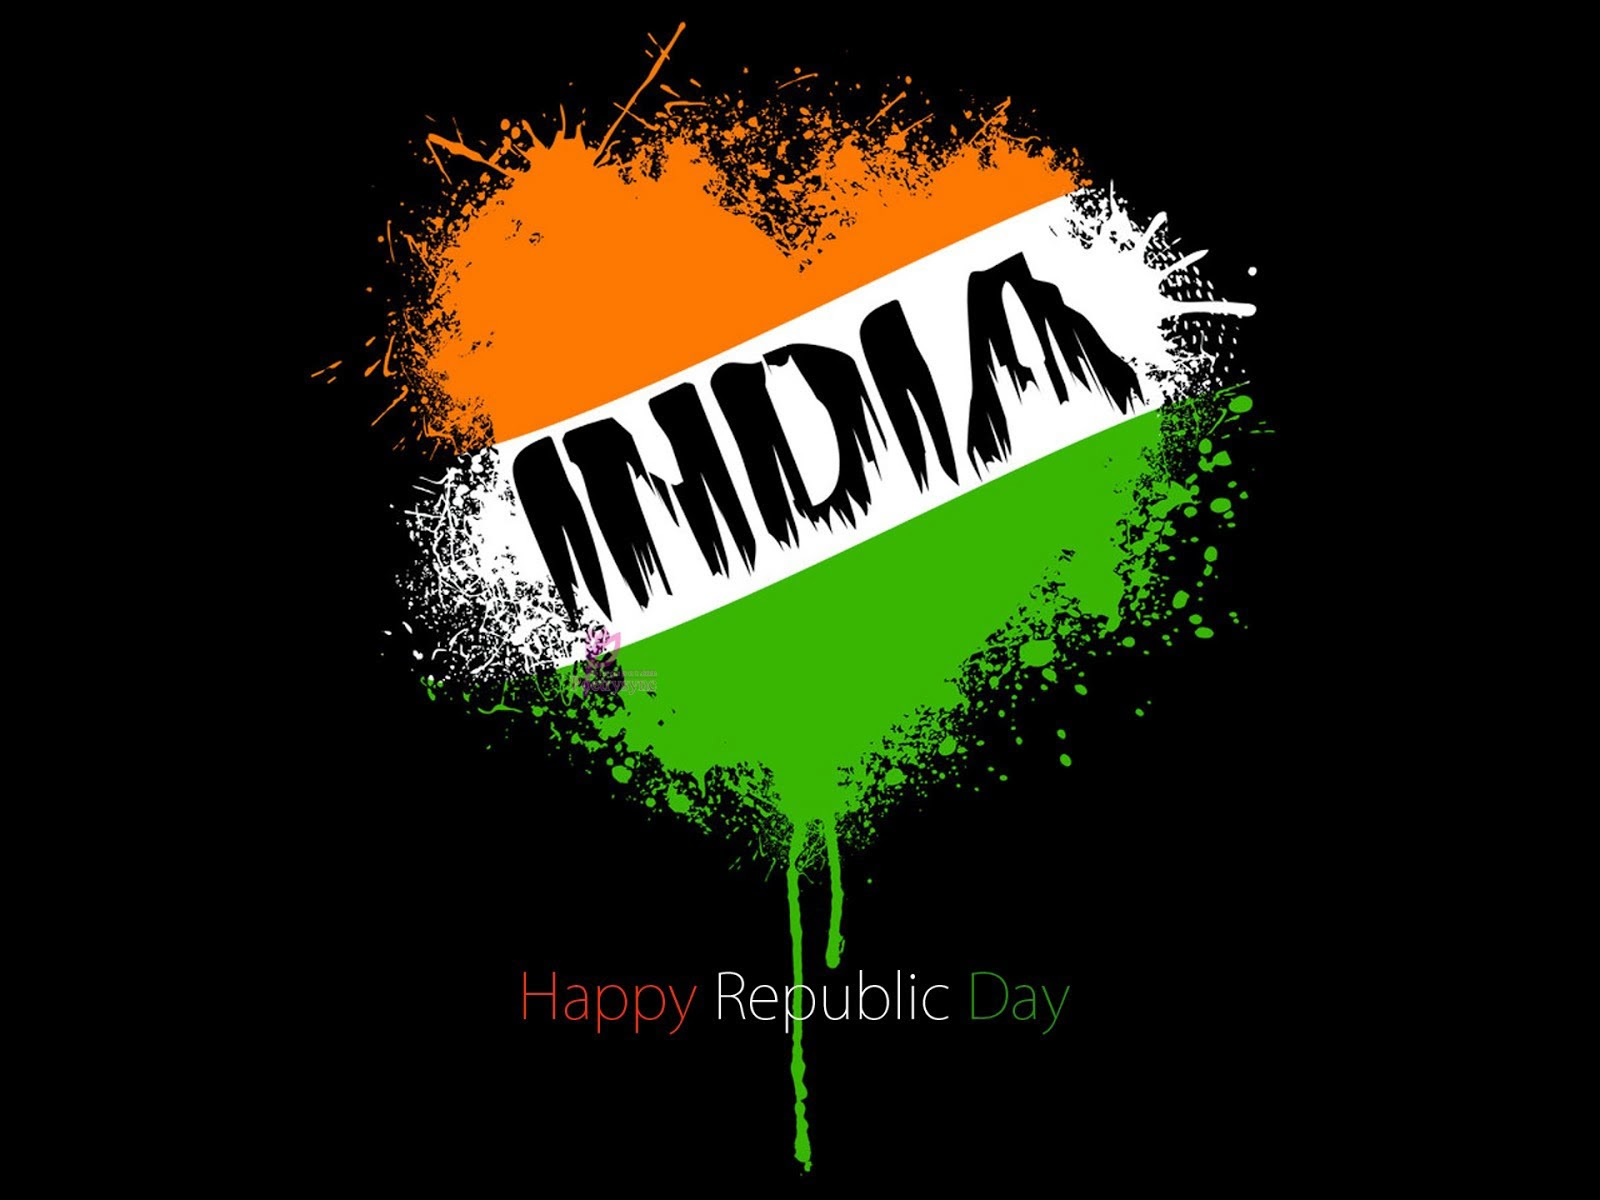 26 January Happy Republic Day Images 2019 Wallpapers Pictures